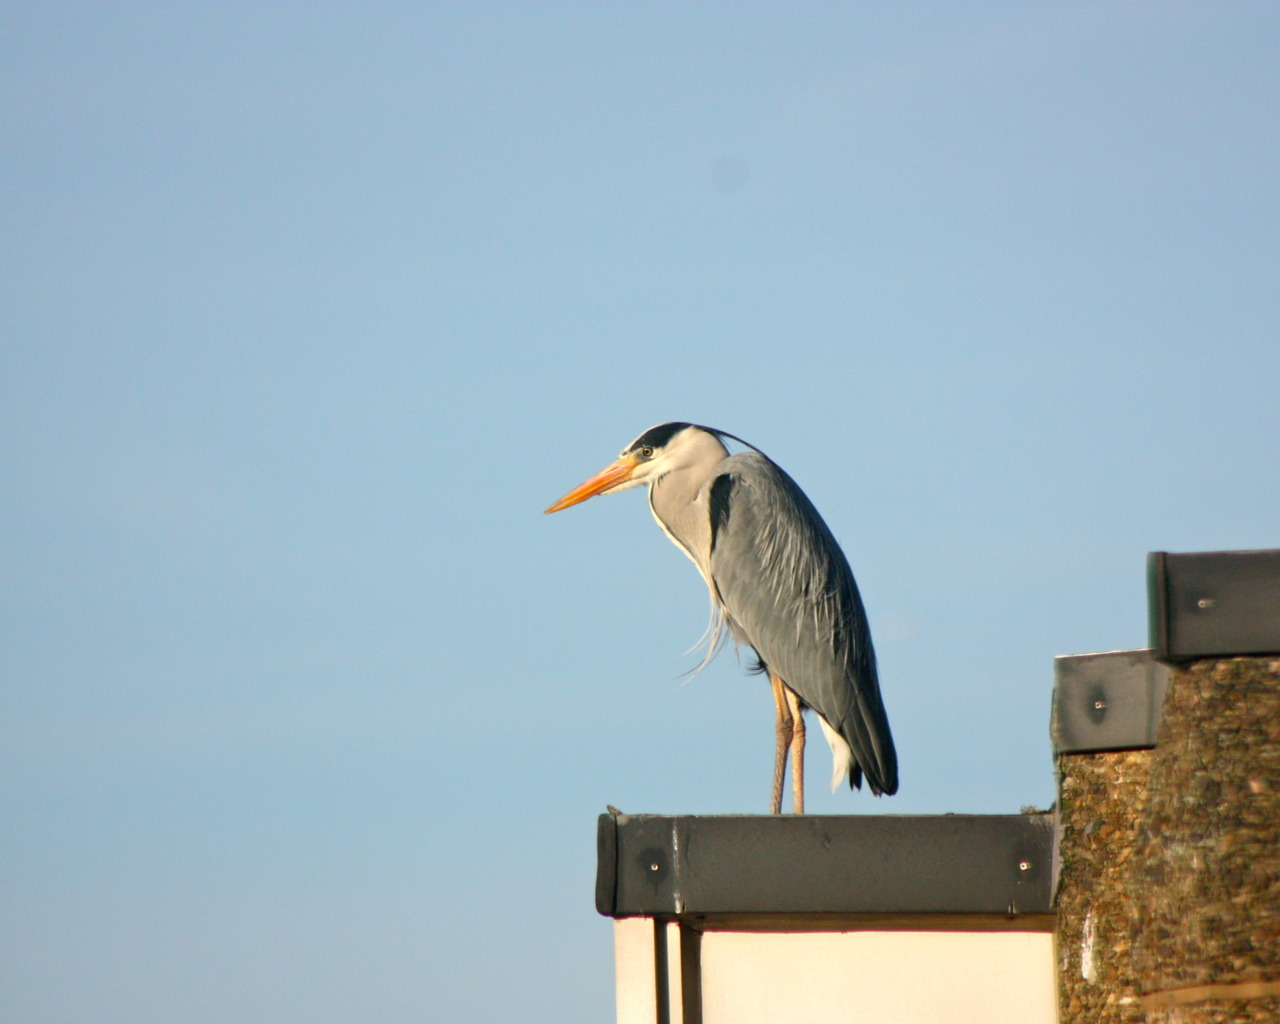 Heron on a hot tin roof. This chap (or chapette for all I know) often sits on the top of this apartment window in Battersea, southwest London, studying the fish pond below. I'm curious; do any of you know which type of heron this is?